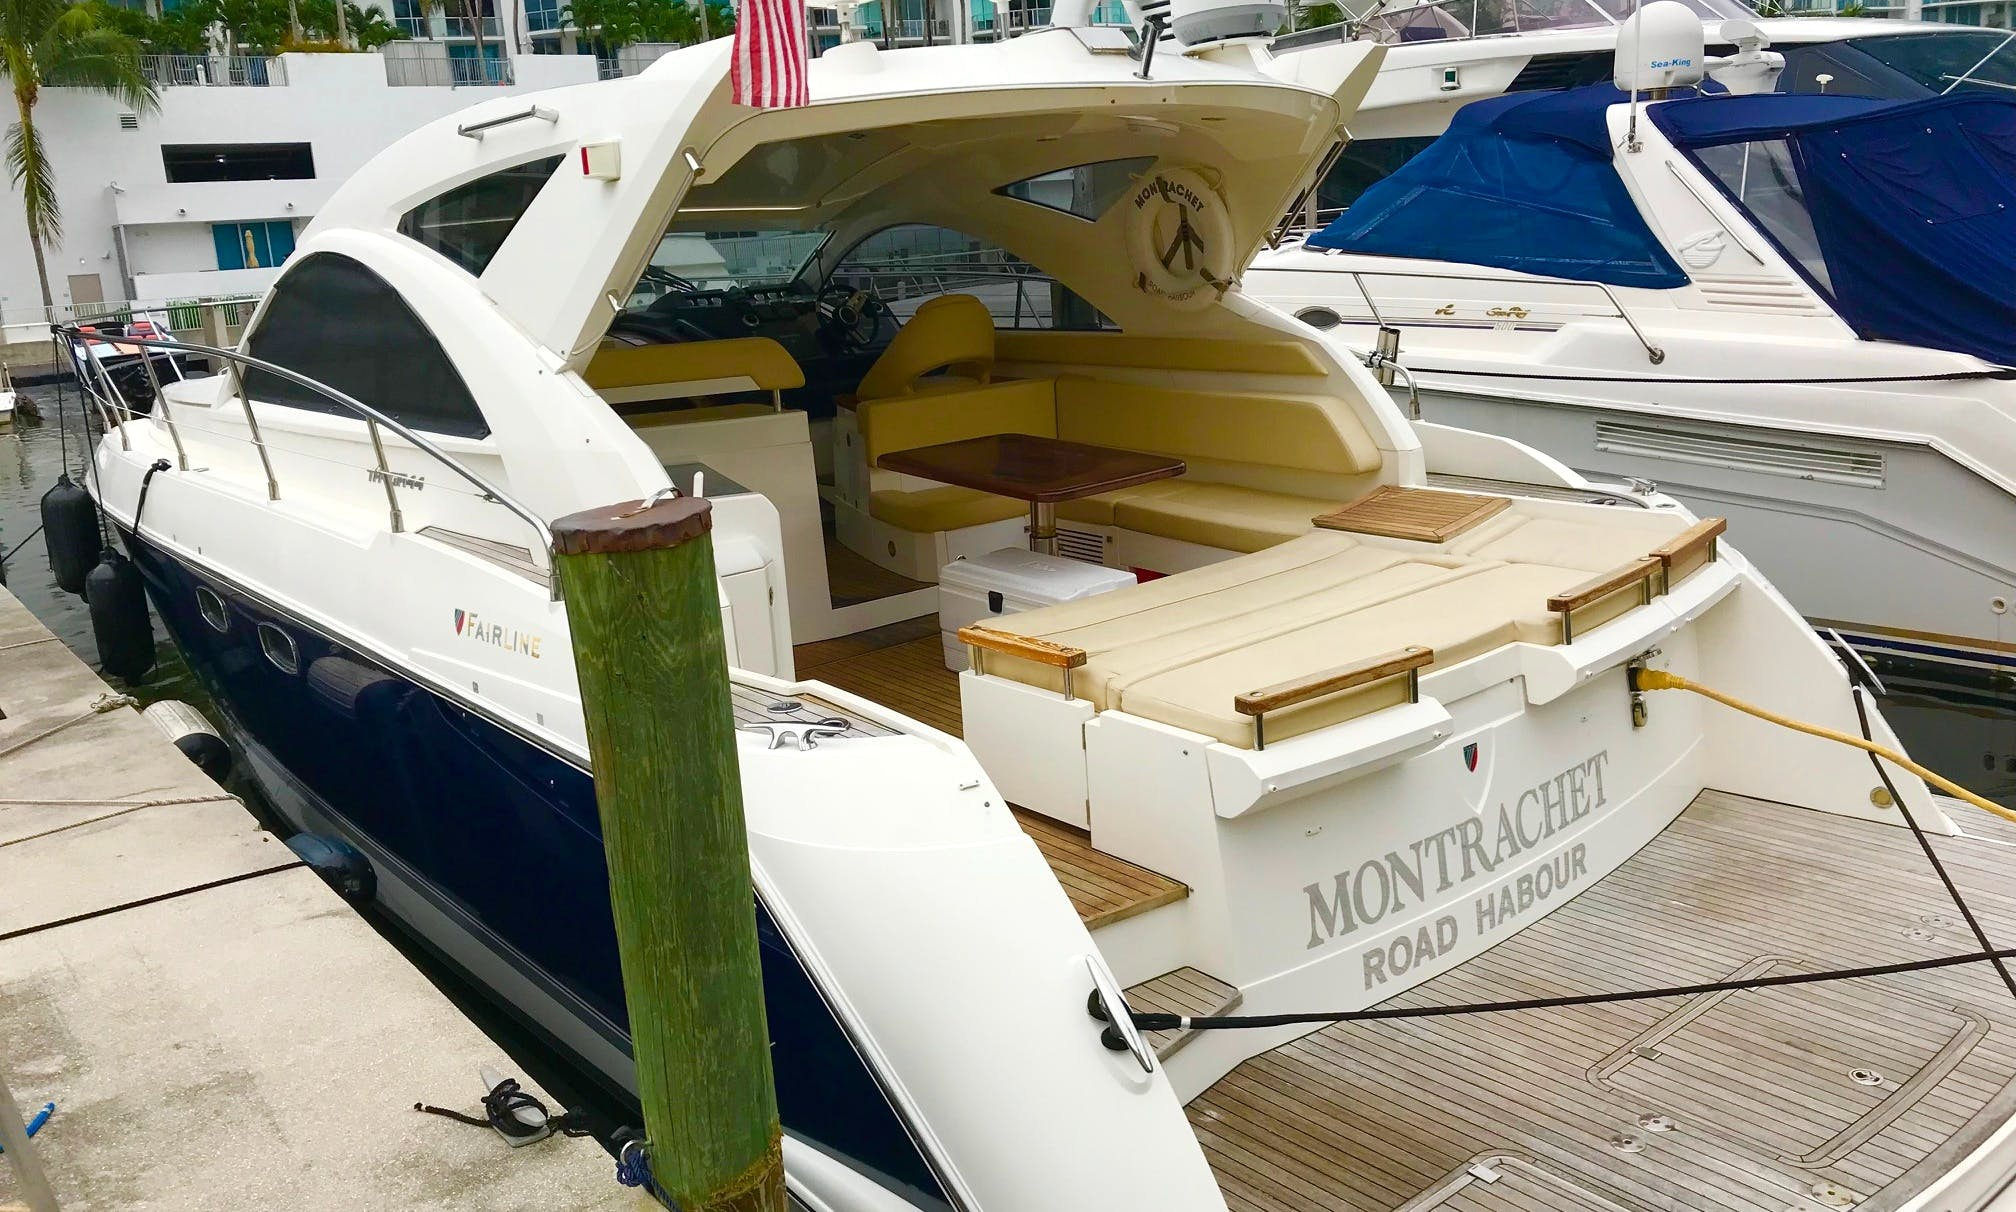 2011 Motor Yacht rental that fits 11 people in Sunny Isles Beach